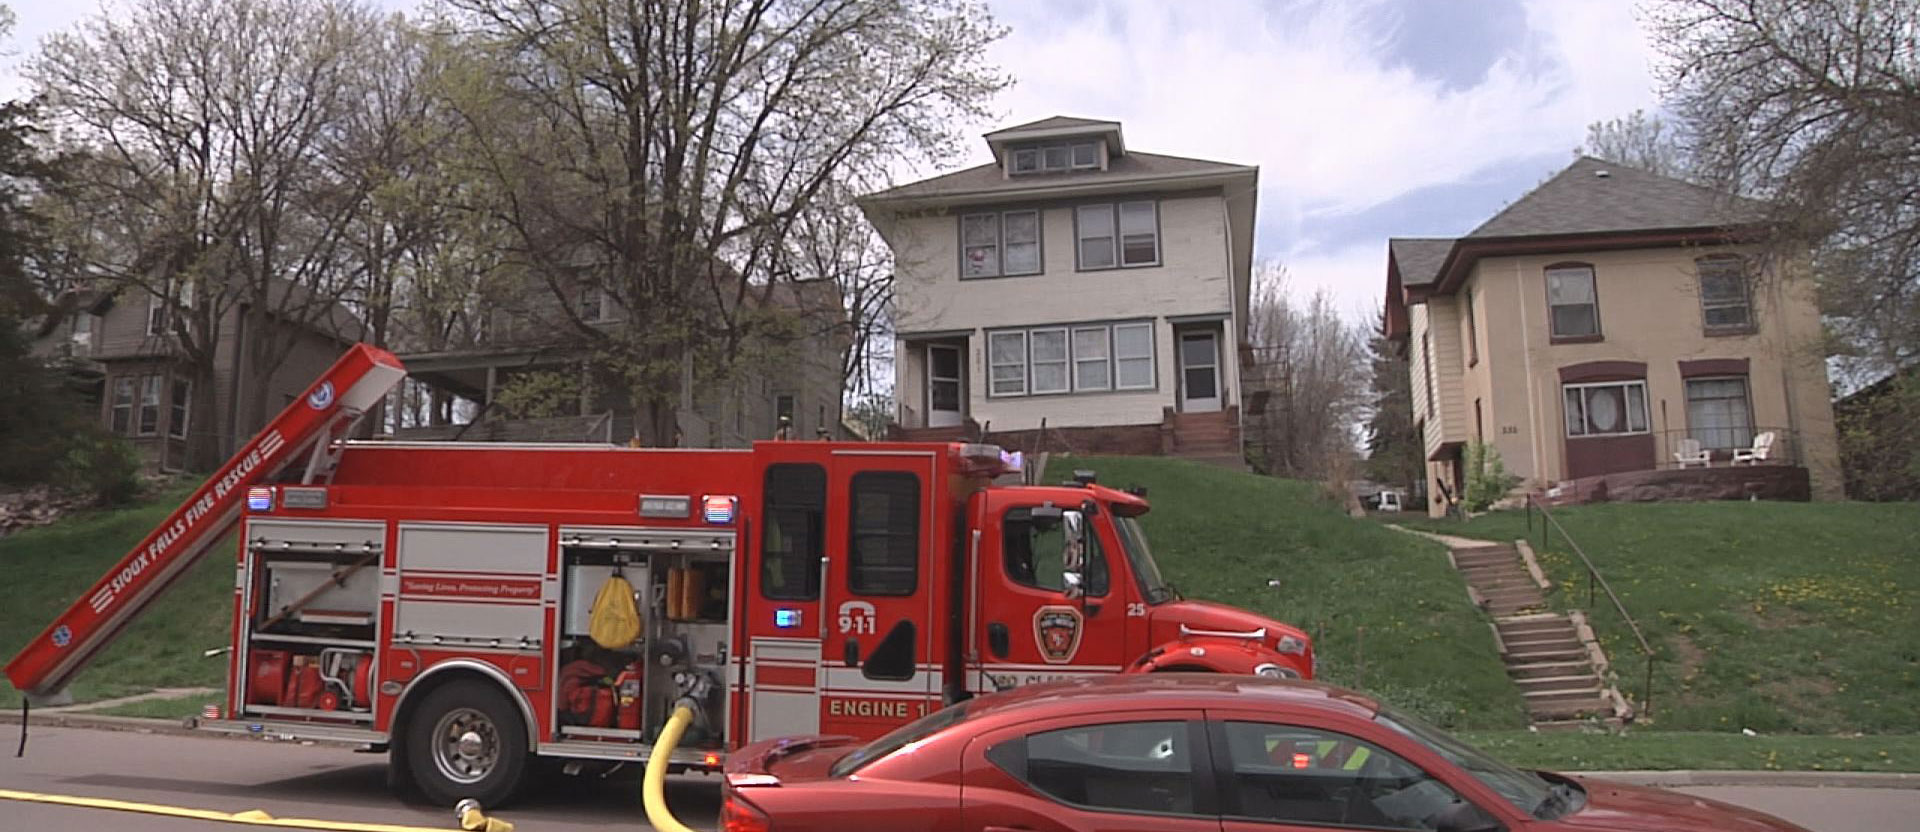 sioux-falls-spring-ave-fire_1493069204268.jpg